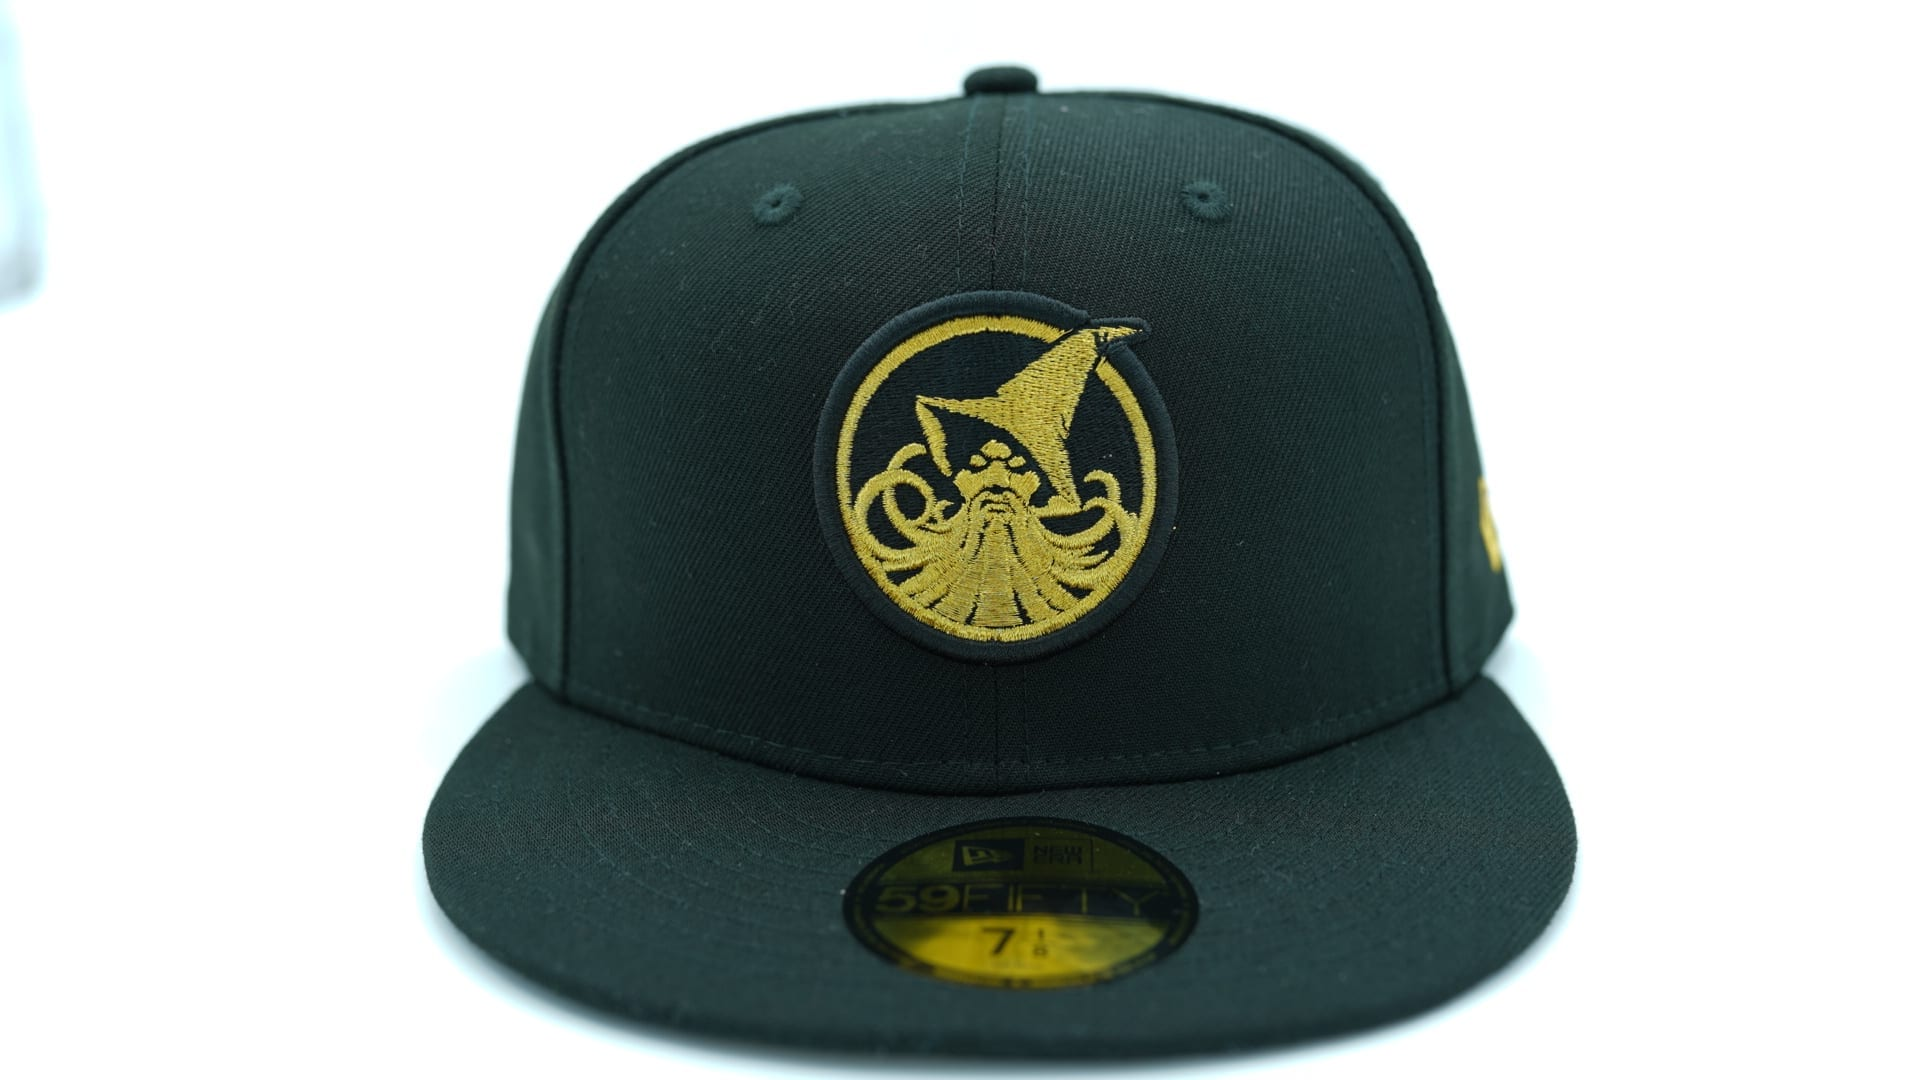 1c4d74eff New York Yankees 20th Anniversary World Series Patch 59Fifty Fitted Cap by  NEW ERA x MLB